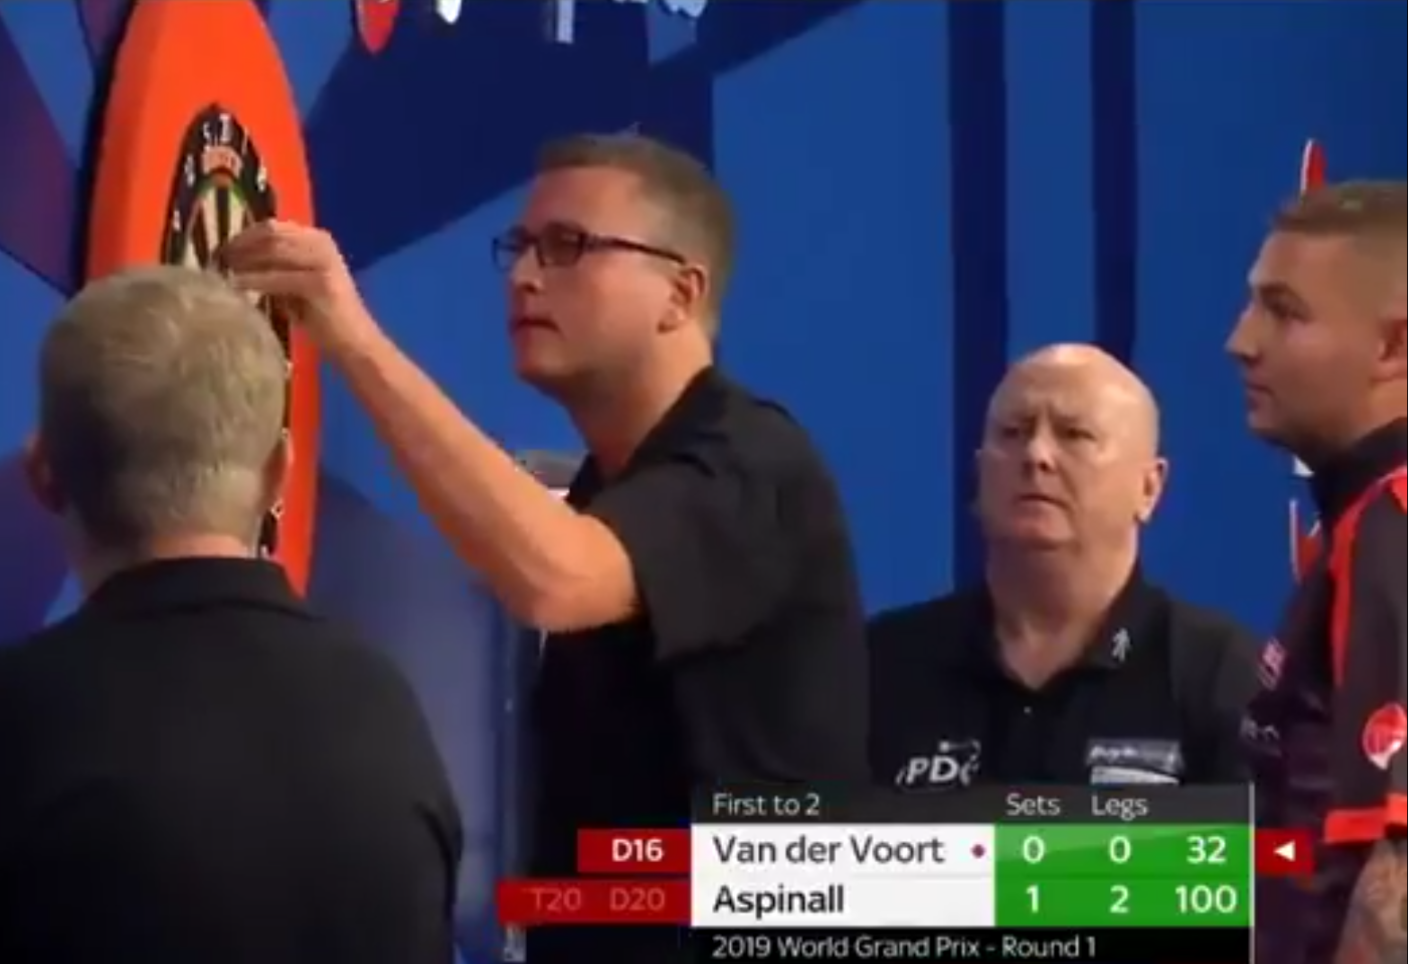 VIDEO: Nathan Aspinall Saw His Point Break And Get Stuck In Dartboard